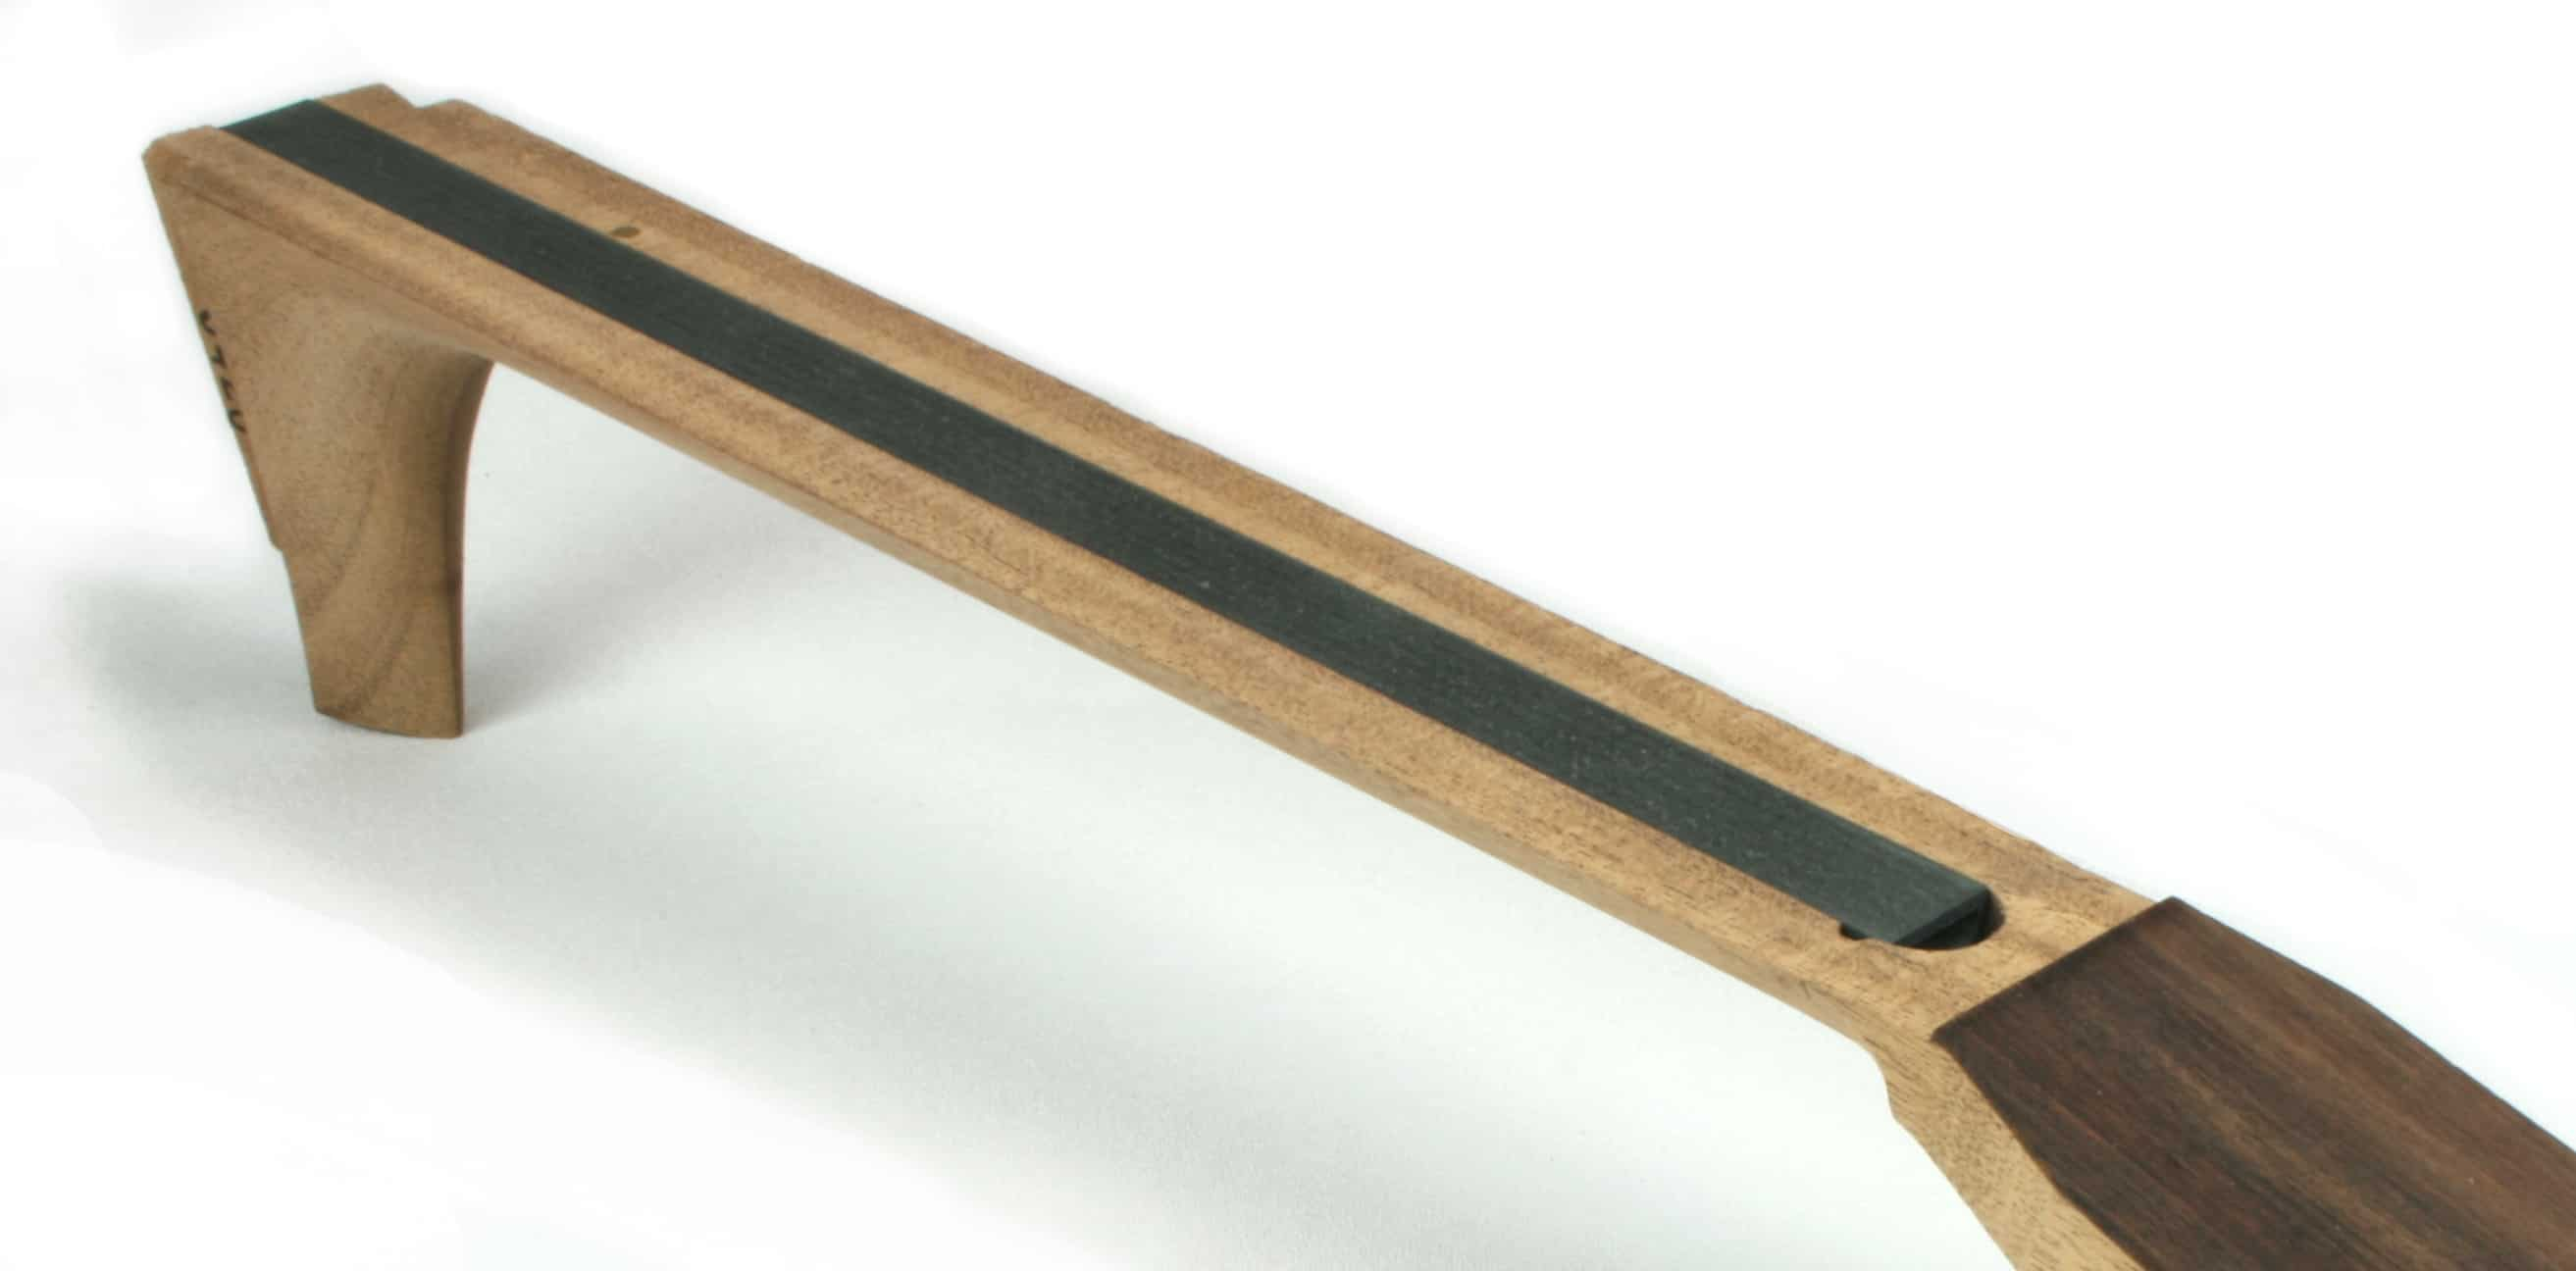 carbon fiber guitar neck beam